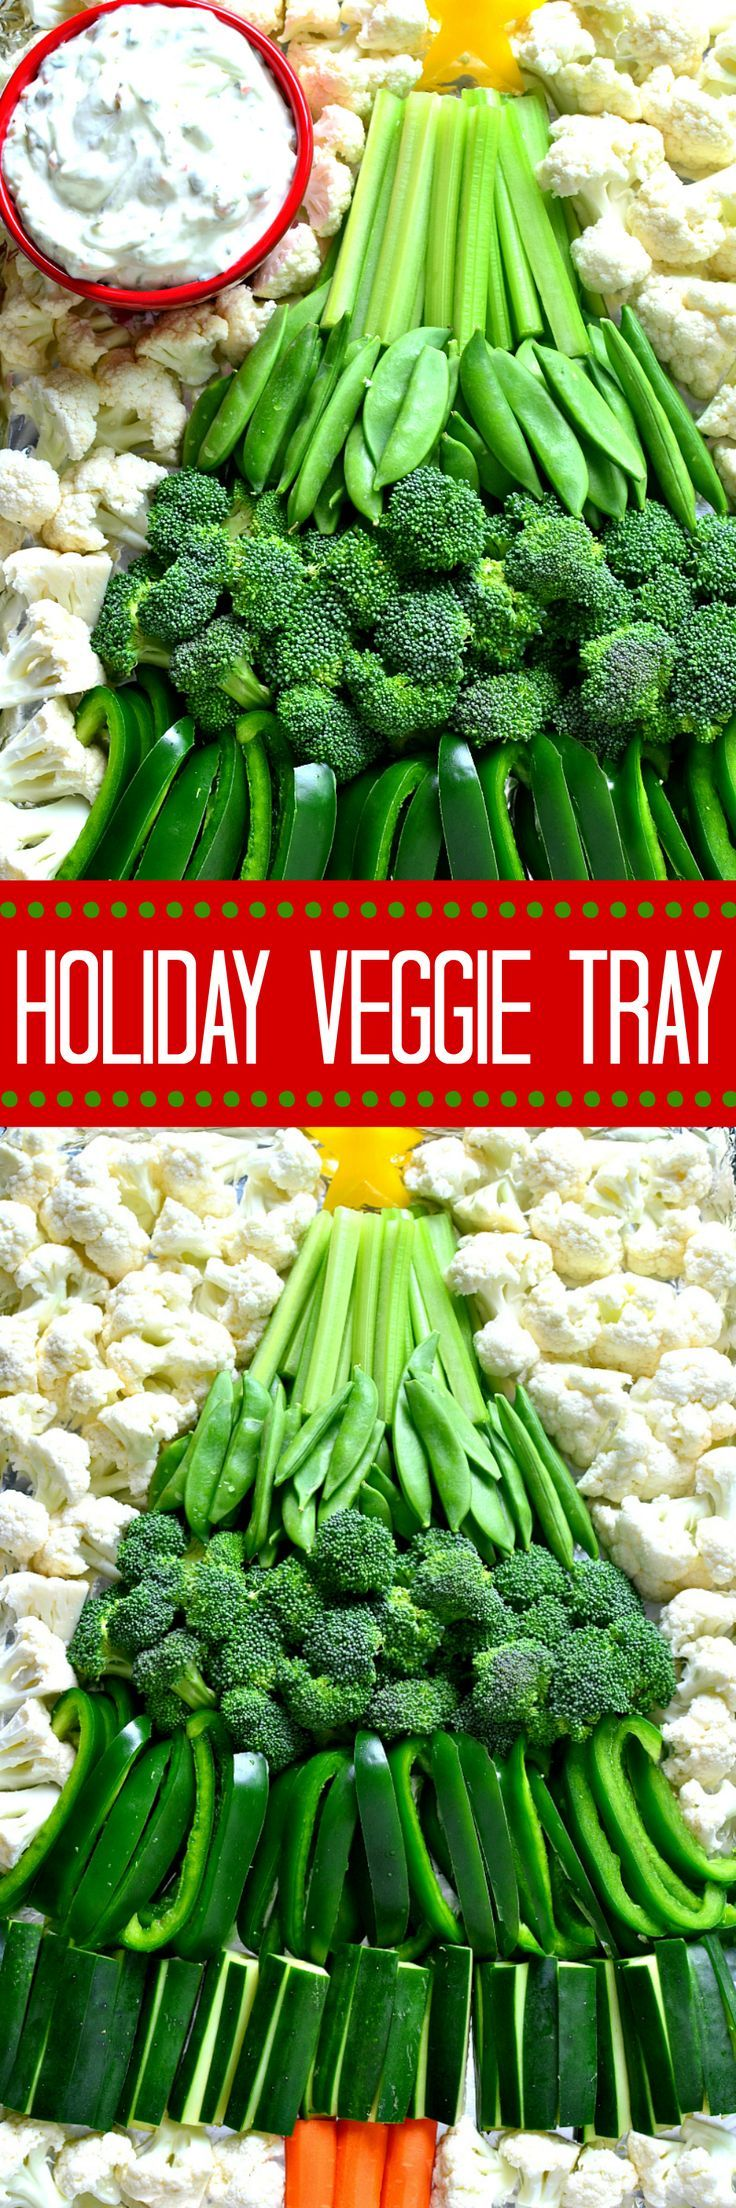 This Holiday Veggie Tray comes together quickly with just ...